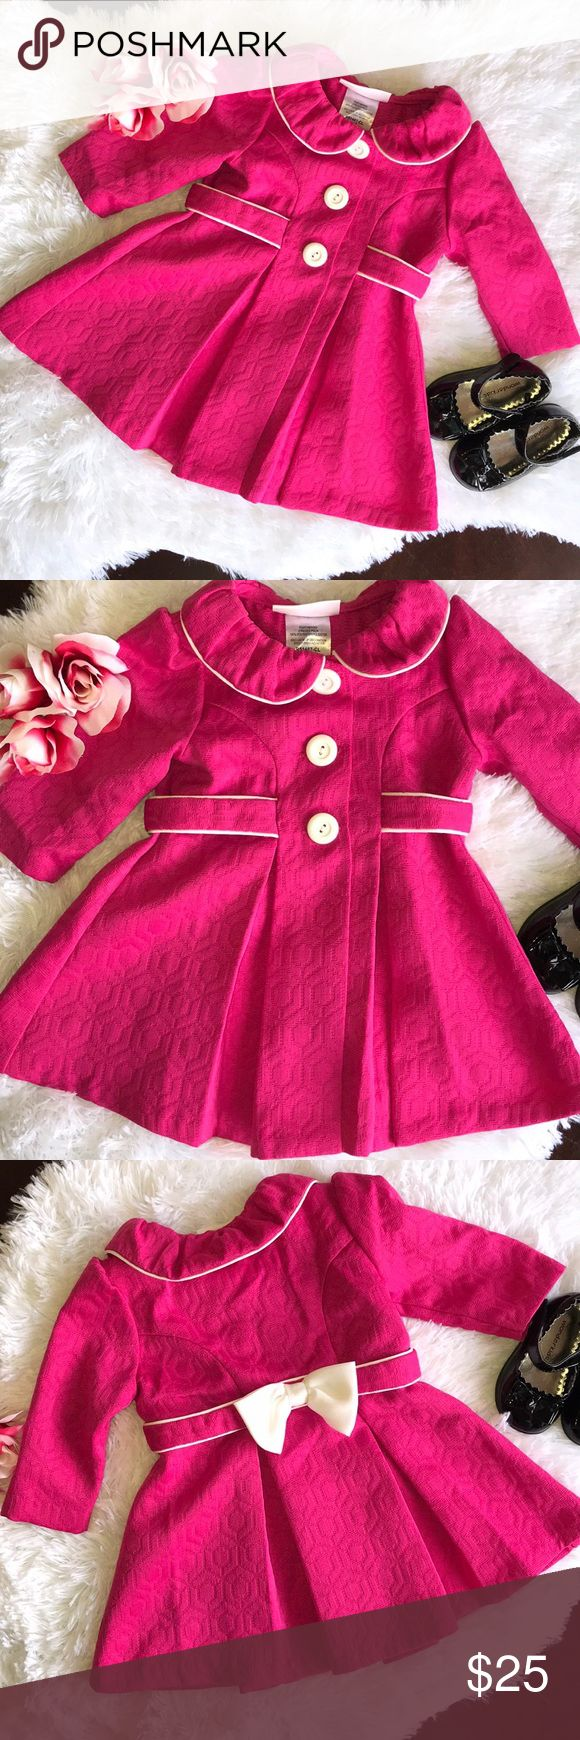 Baby girl coat Baby girl pink long coat with bow size 6-9 months Bonnie Baby Jackets & Coats Pea Coats #babygirlcoats